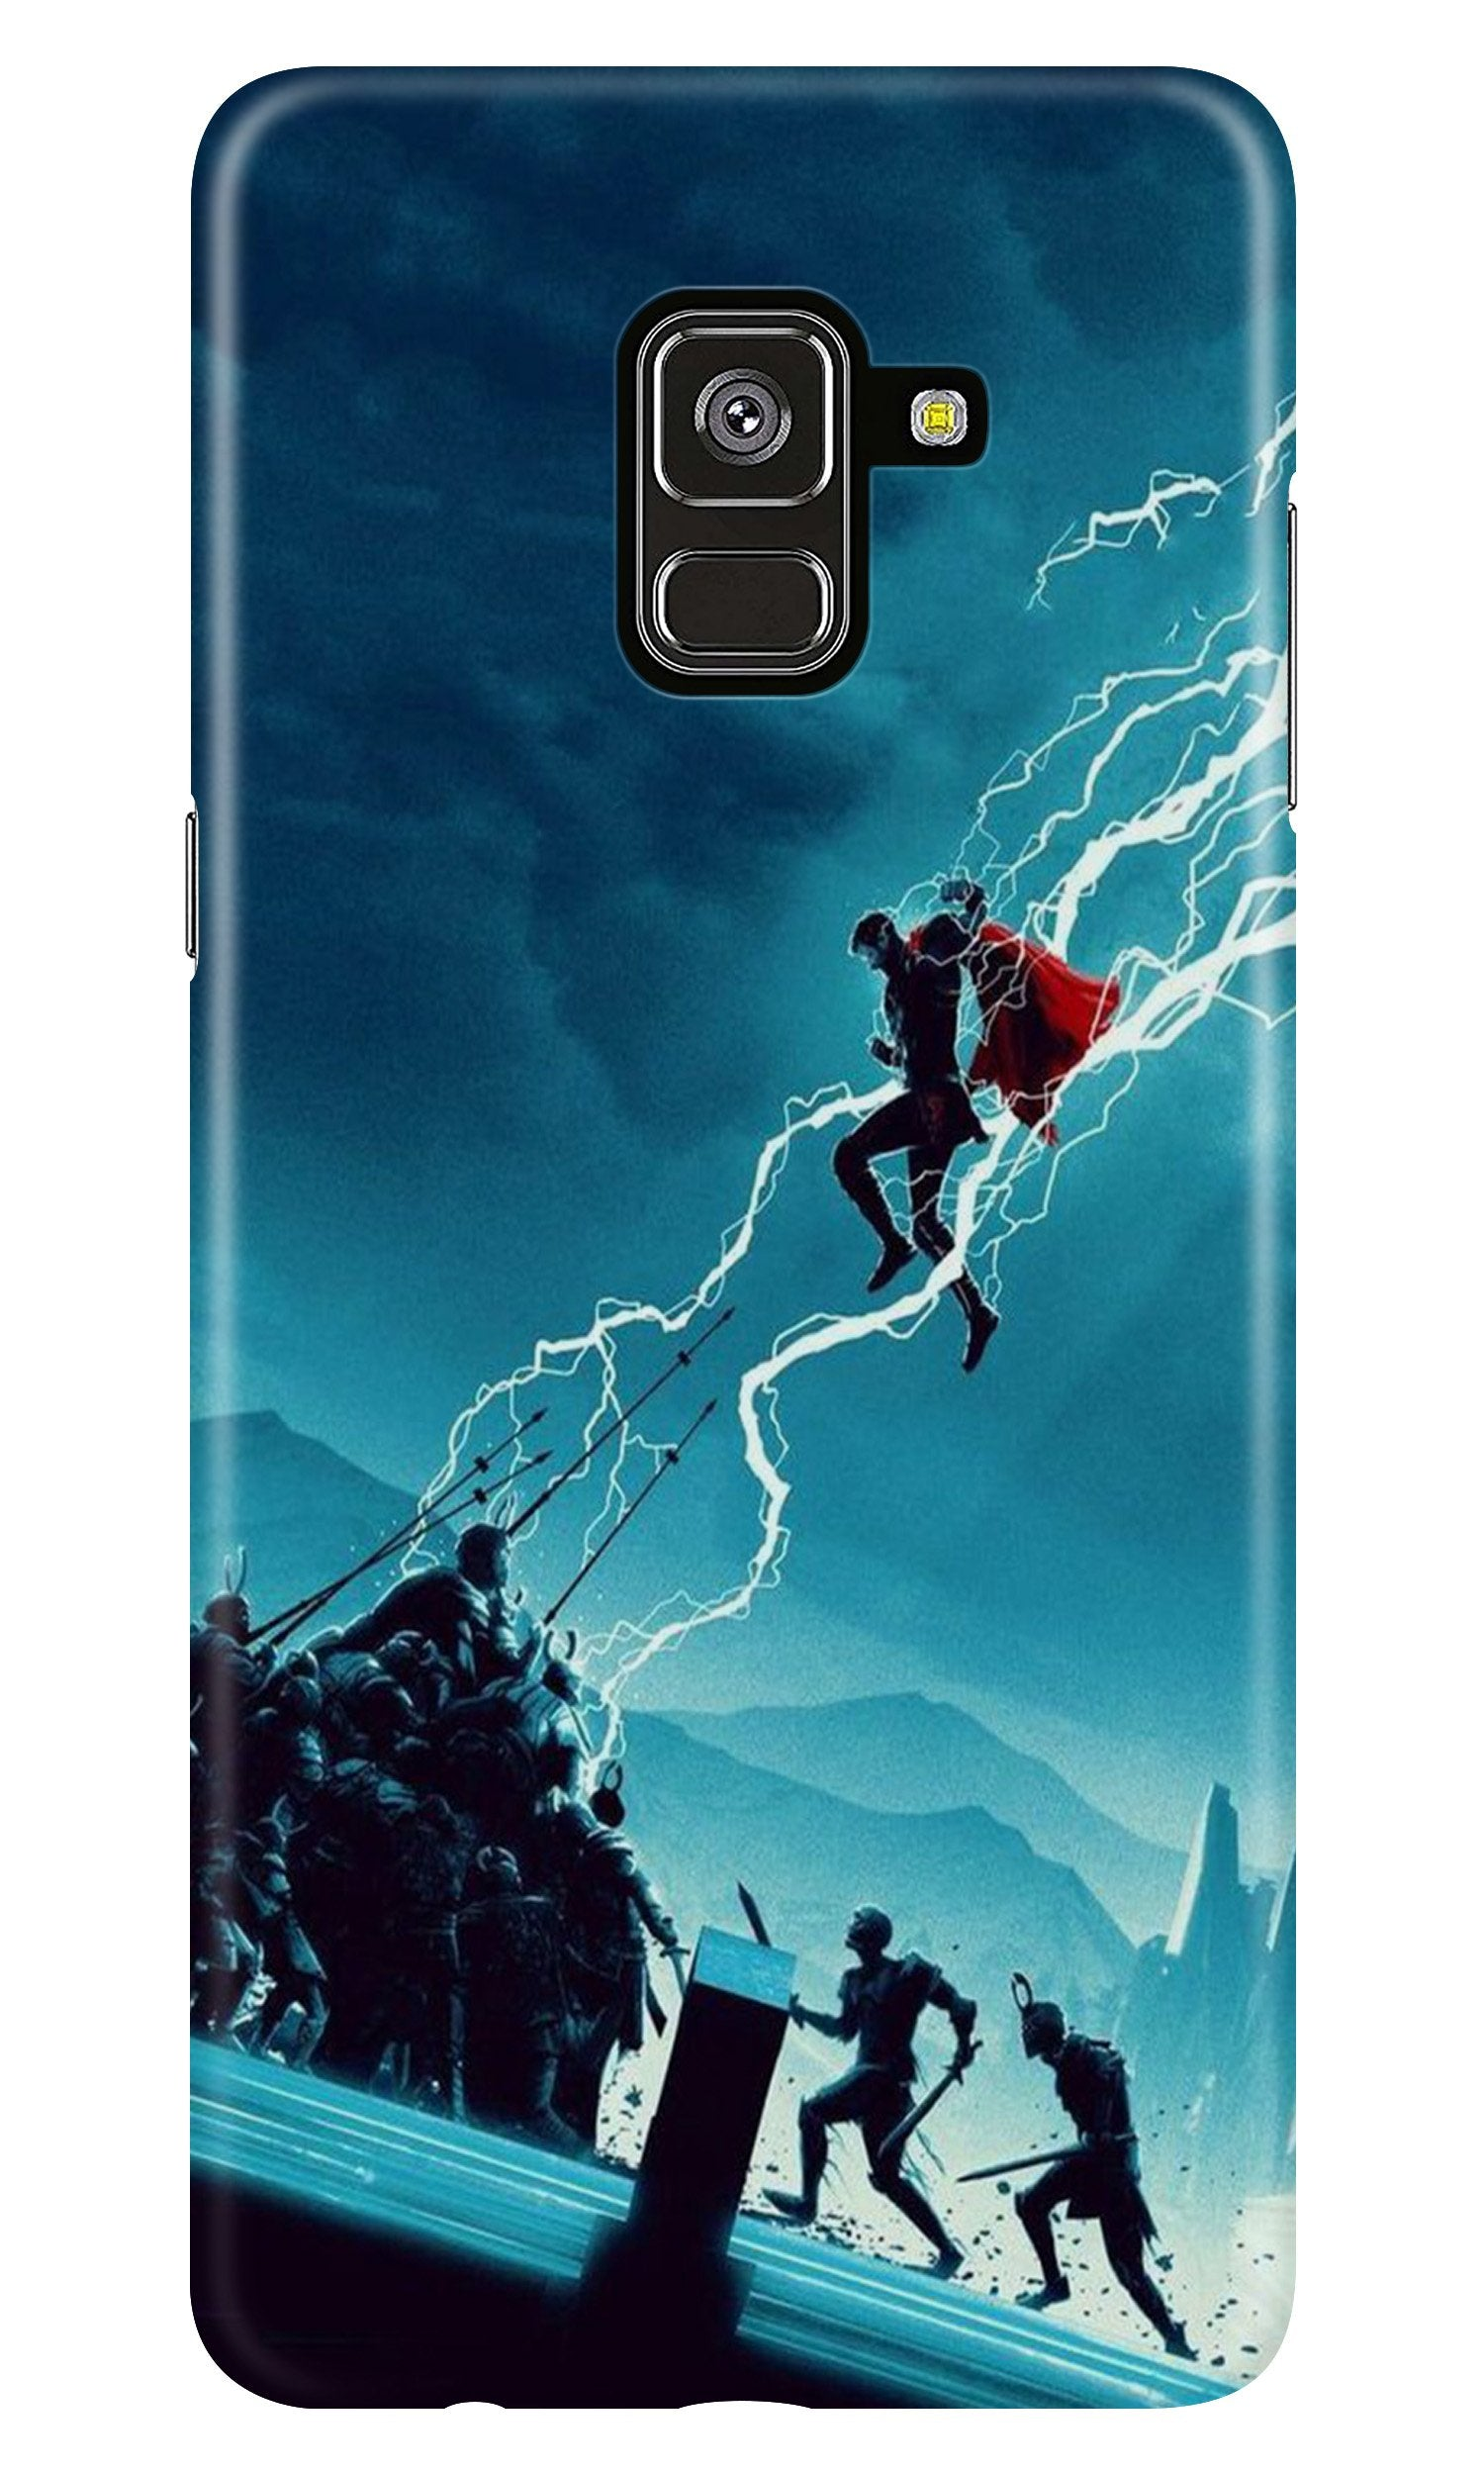 Thor Avengers Case for Samsung Galaxy A8 Plus (Design No. 243)